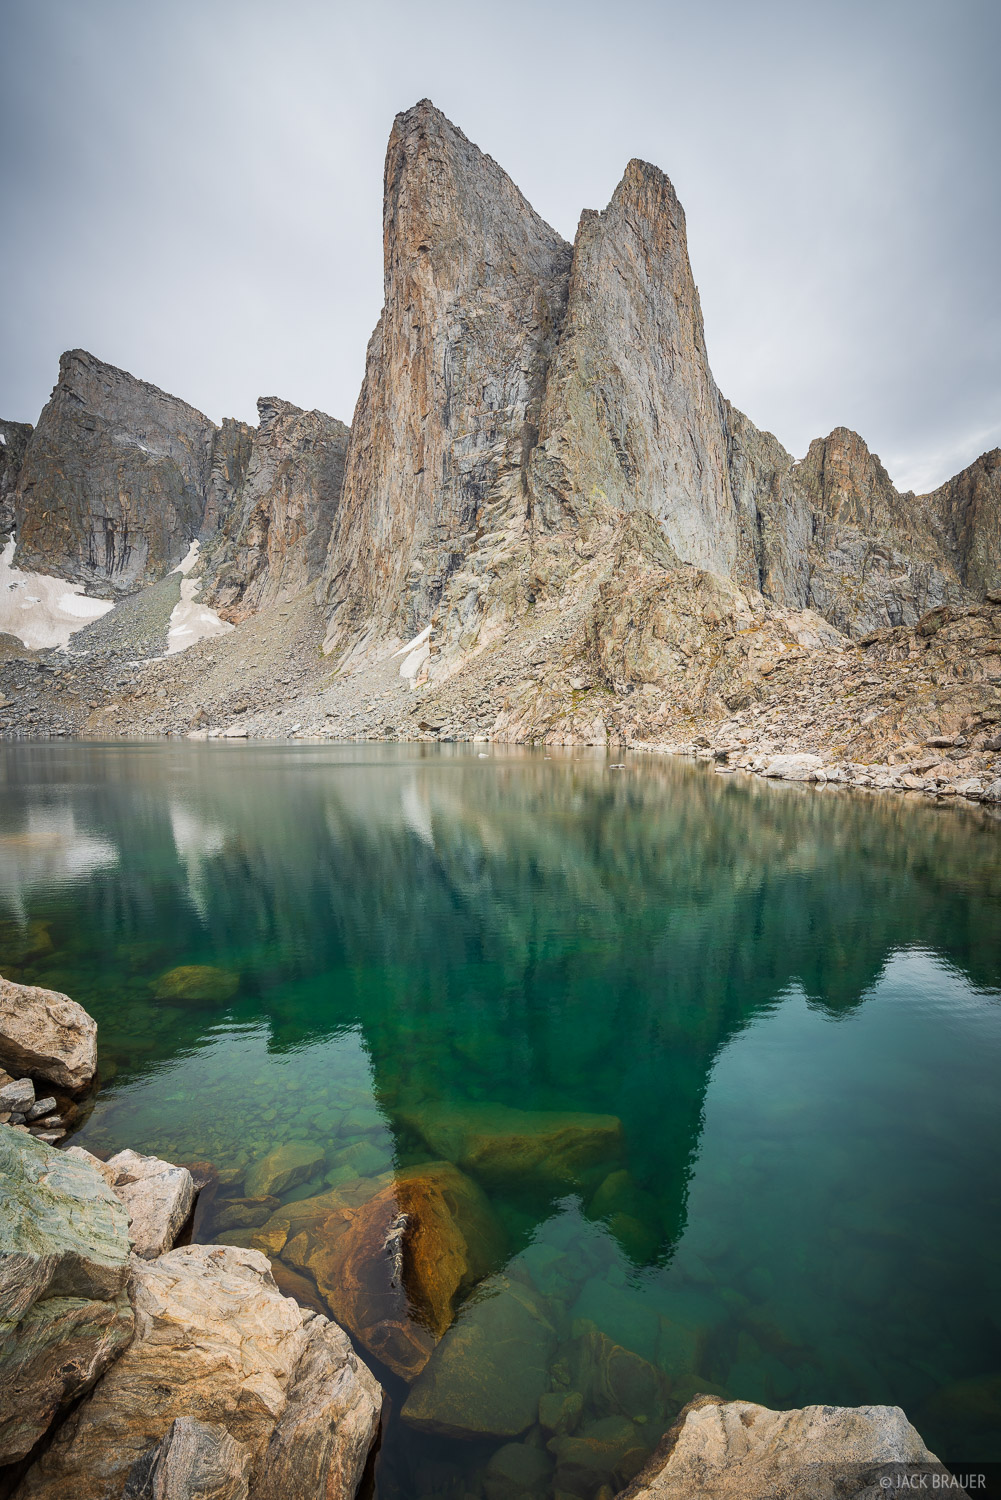 Bridger Wilderness, Lake Donna, Pronghorn Peak, Wind River Range, Wyoming, photo